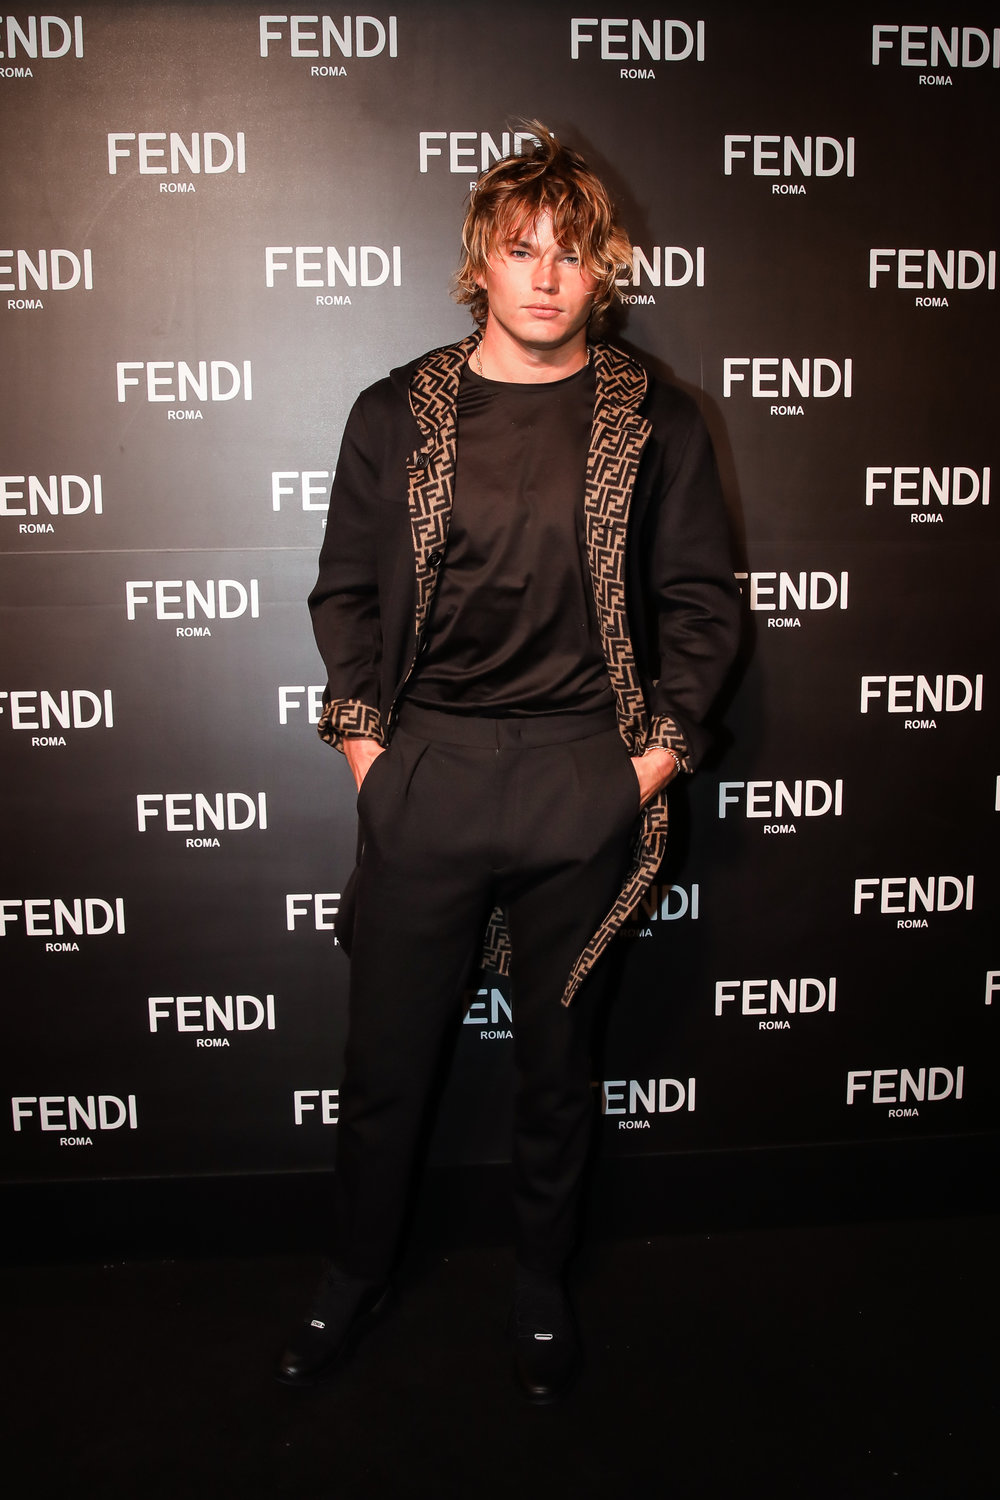 Jordan Barrett  Fendi Collins Street Launch 30.8.18-3548.jpg